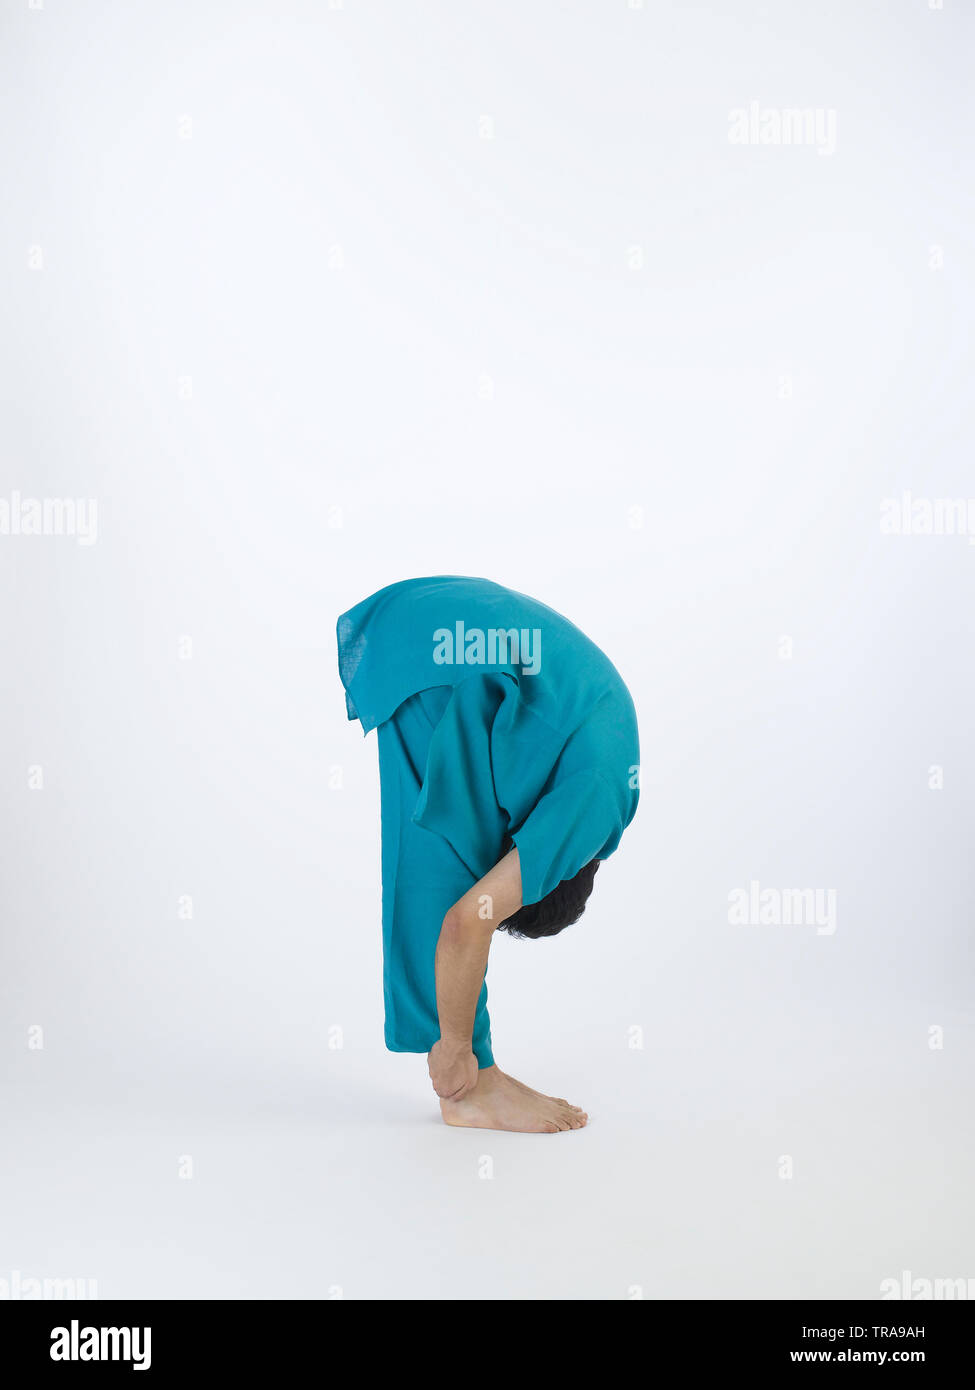 PORTRAIT OF A  YOUNG  BOY PERFORMING THE SURYA NAMASKAR POSE #3 CALLED Standing Forward Bend (Hasta Padasana) - Stock Image